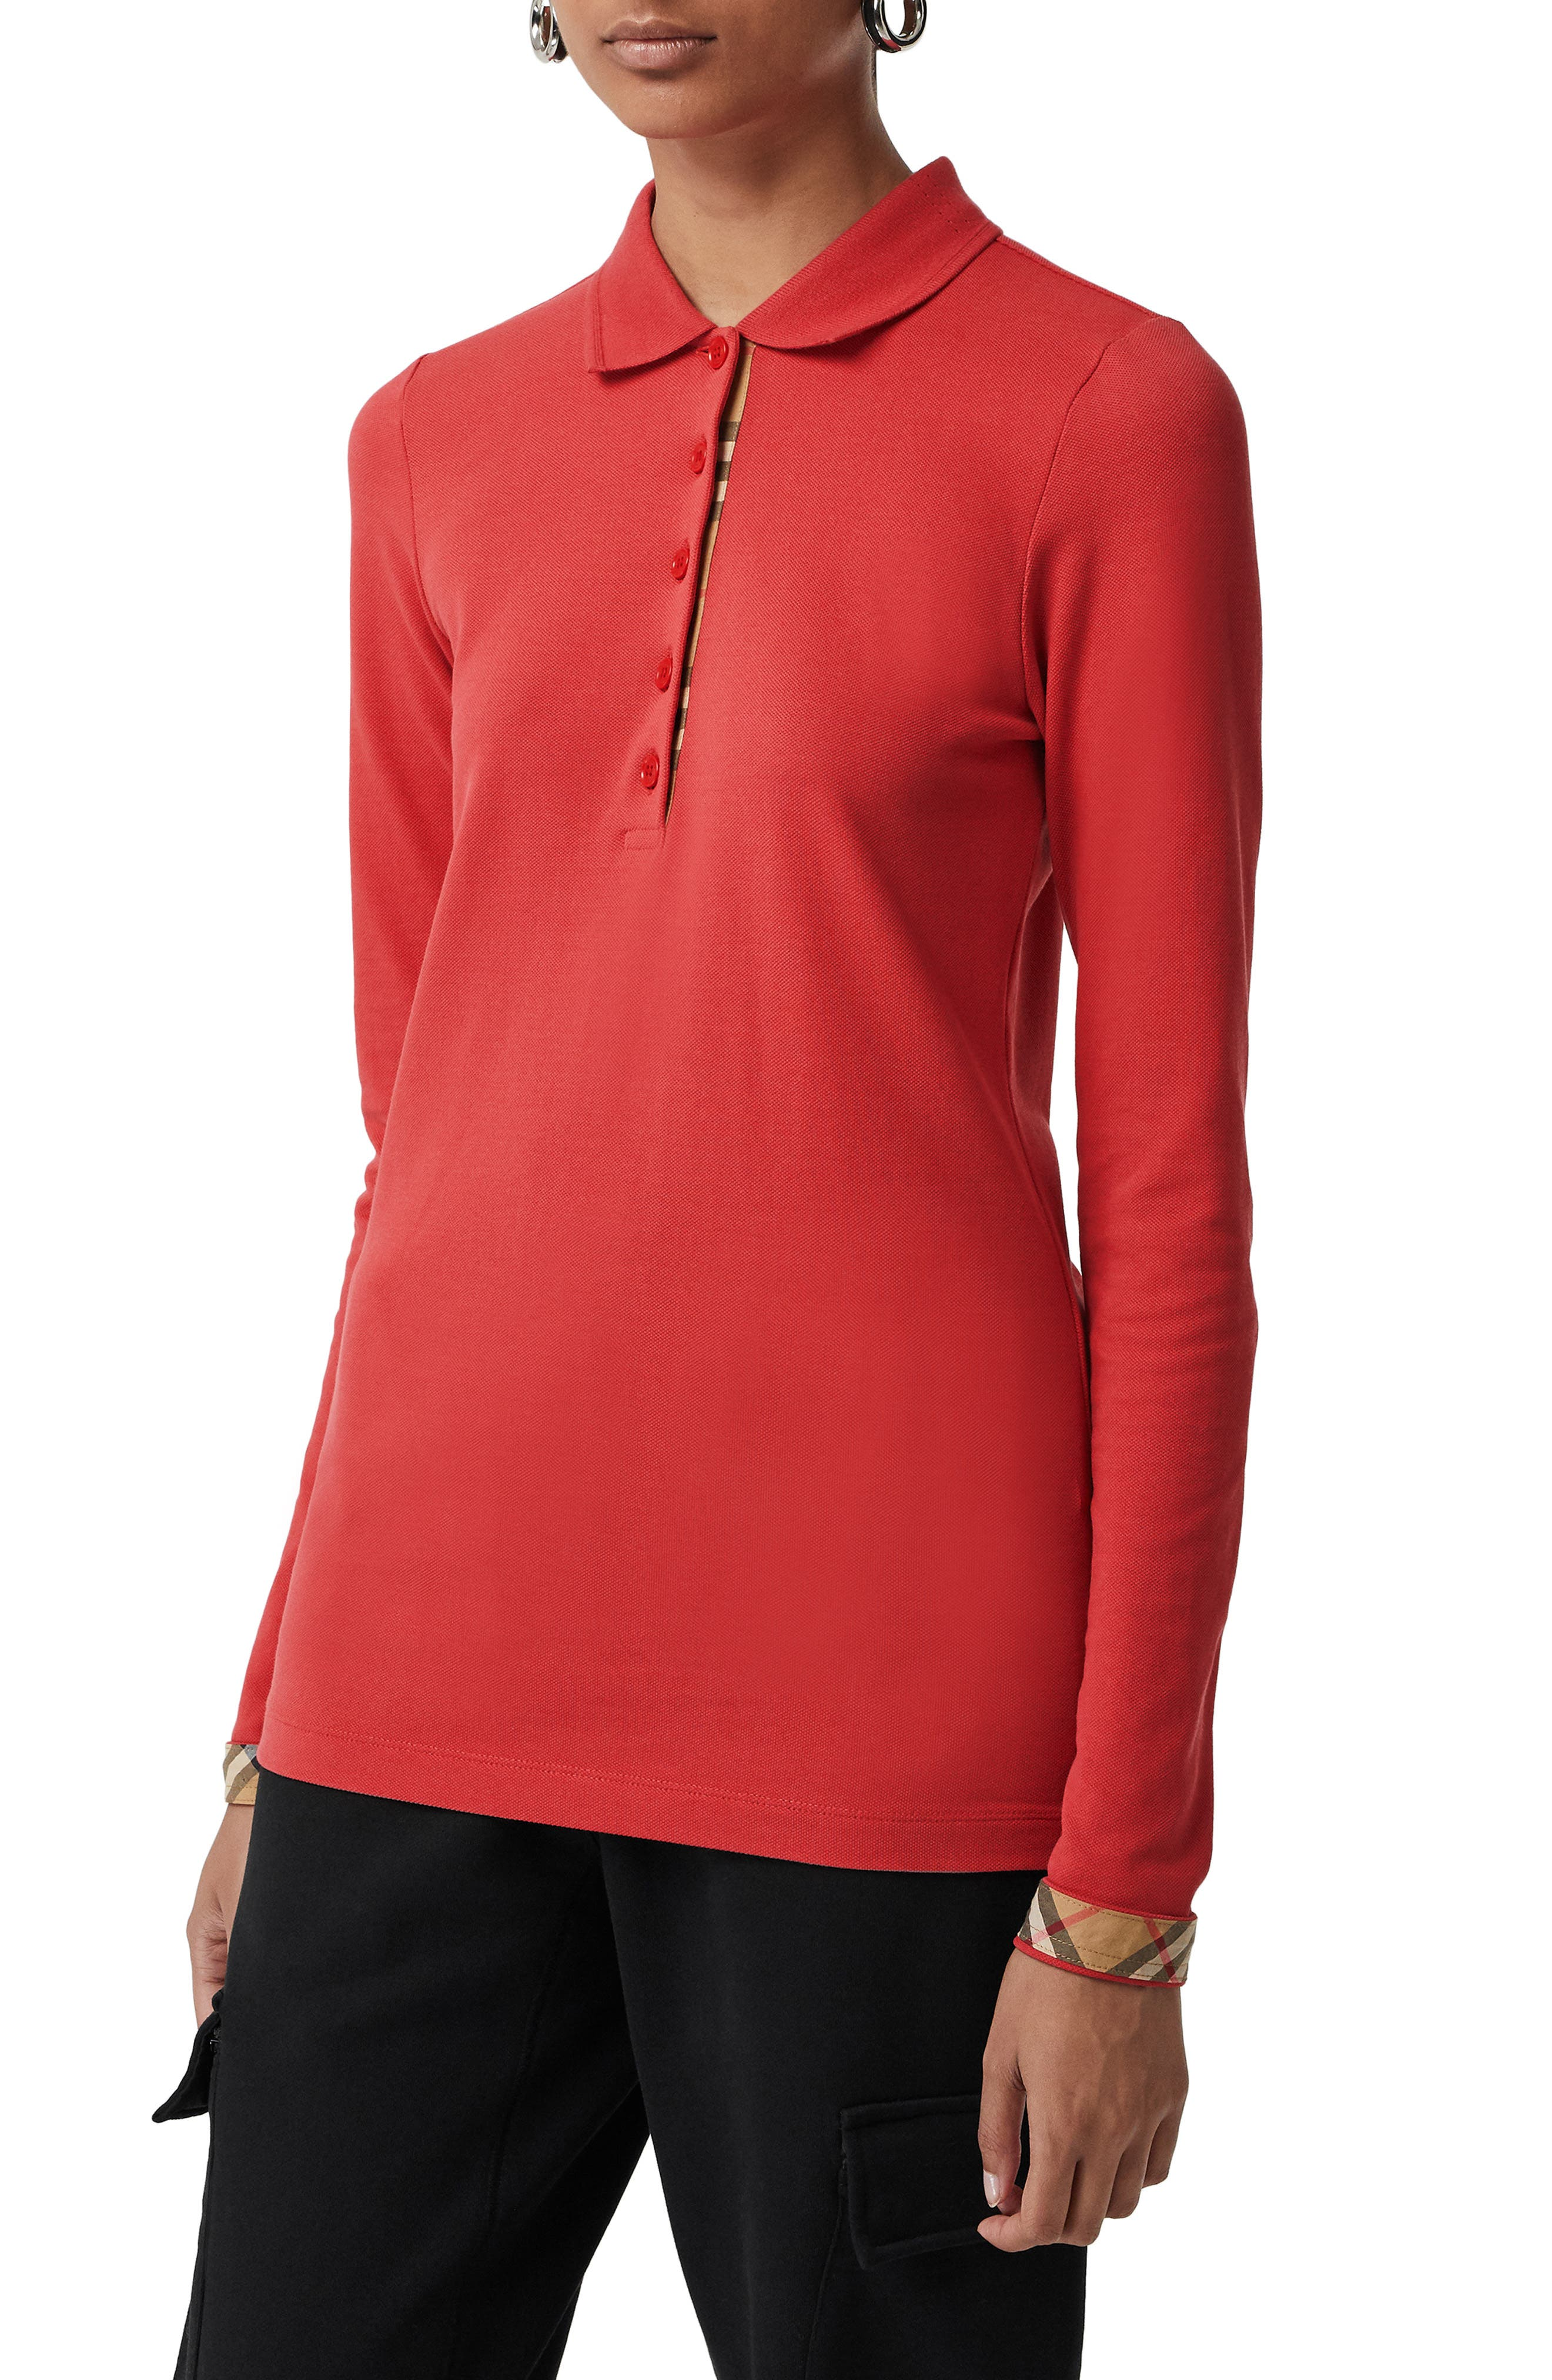 BURBERRY, Zulia Polo Shirt, Main thumbnail 1, color, BRIGHT RED